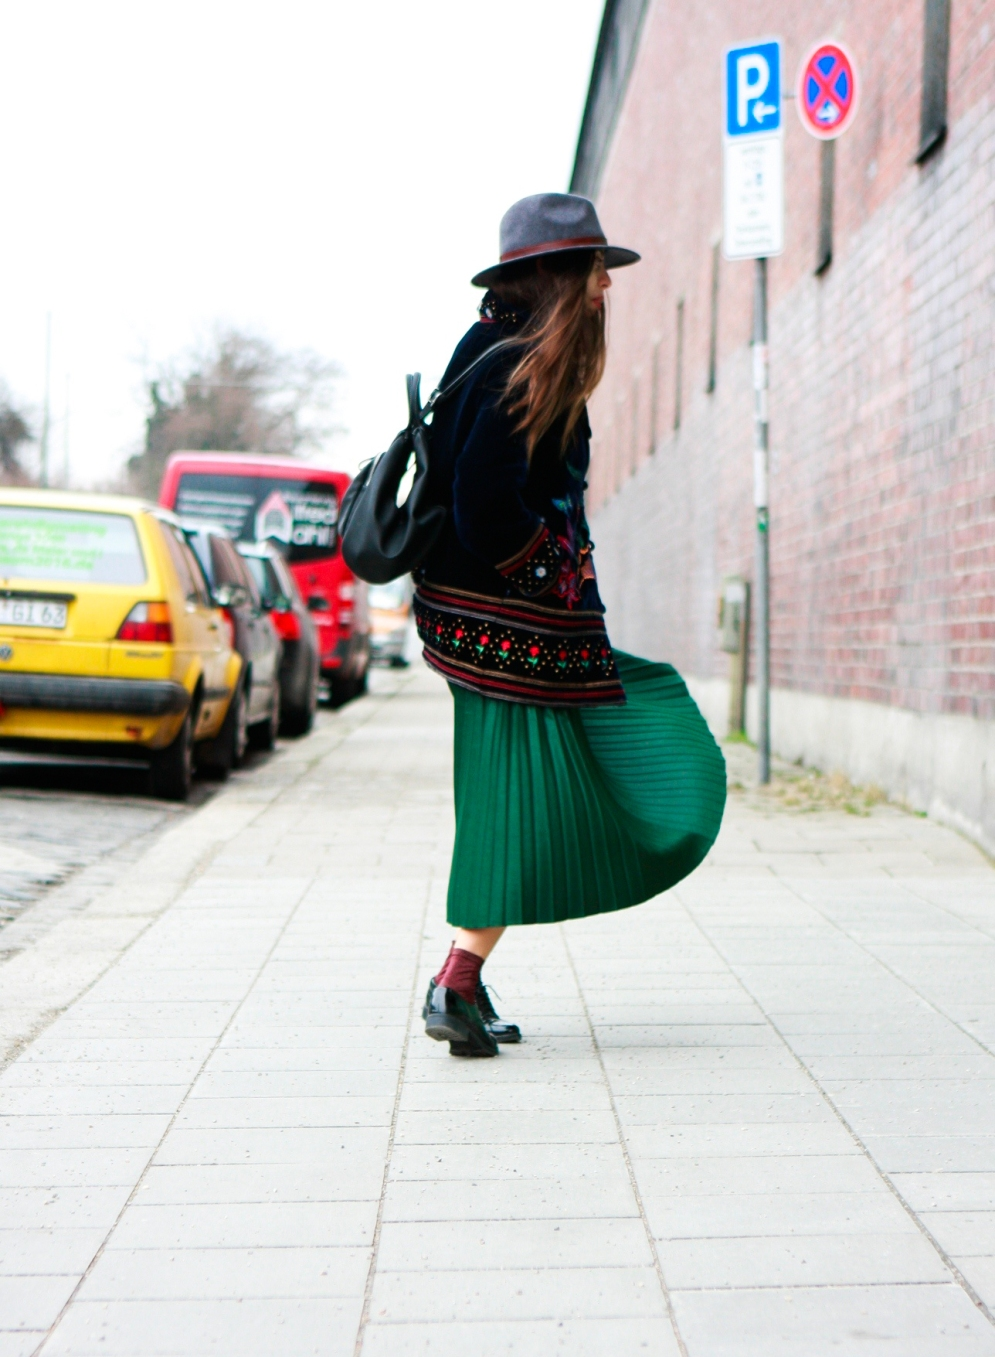 moda-styletelling-why-we-dress-like-thecity-we-live-in-featured-image-12